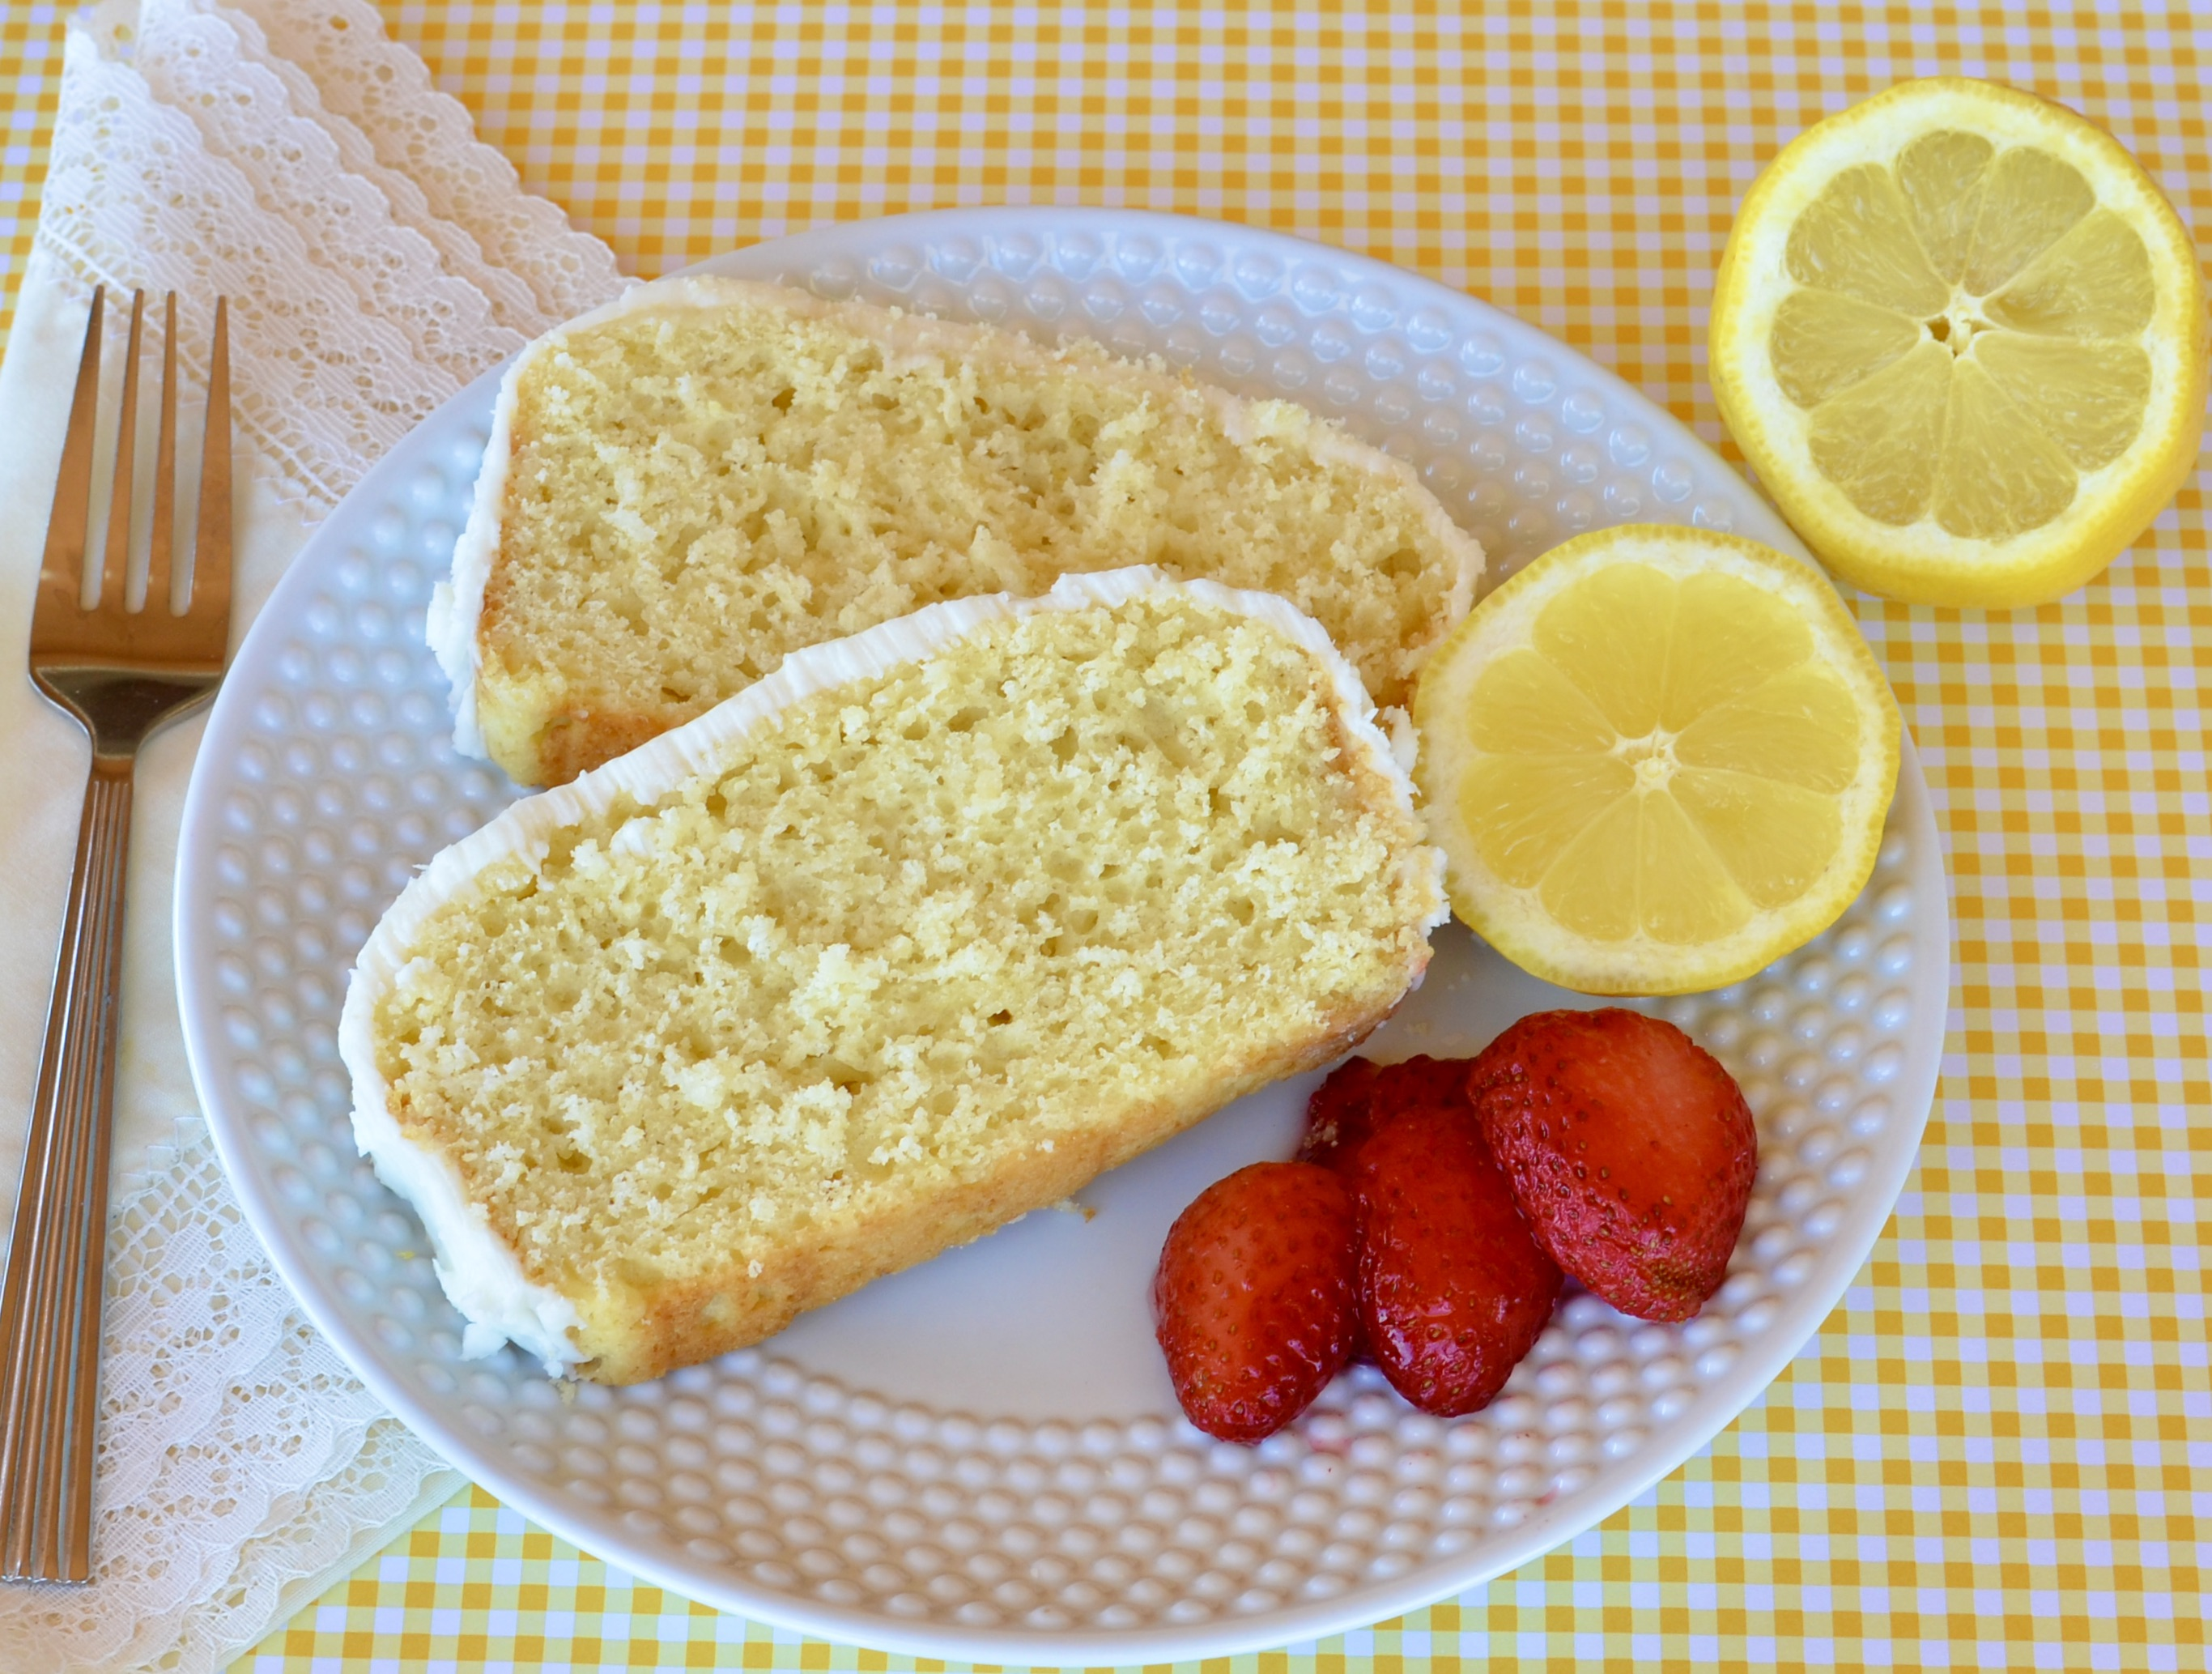 "Recipe creator seth martin made this lemon cake on a whim but was delighted with the results: ""It's sweet, yet retains that delicious tart lemon zing and flavor."" Drizzle the loaf cake with a tart citrus icing while it is still warm; allow cake to cool while the glaze soaks in."